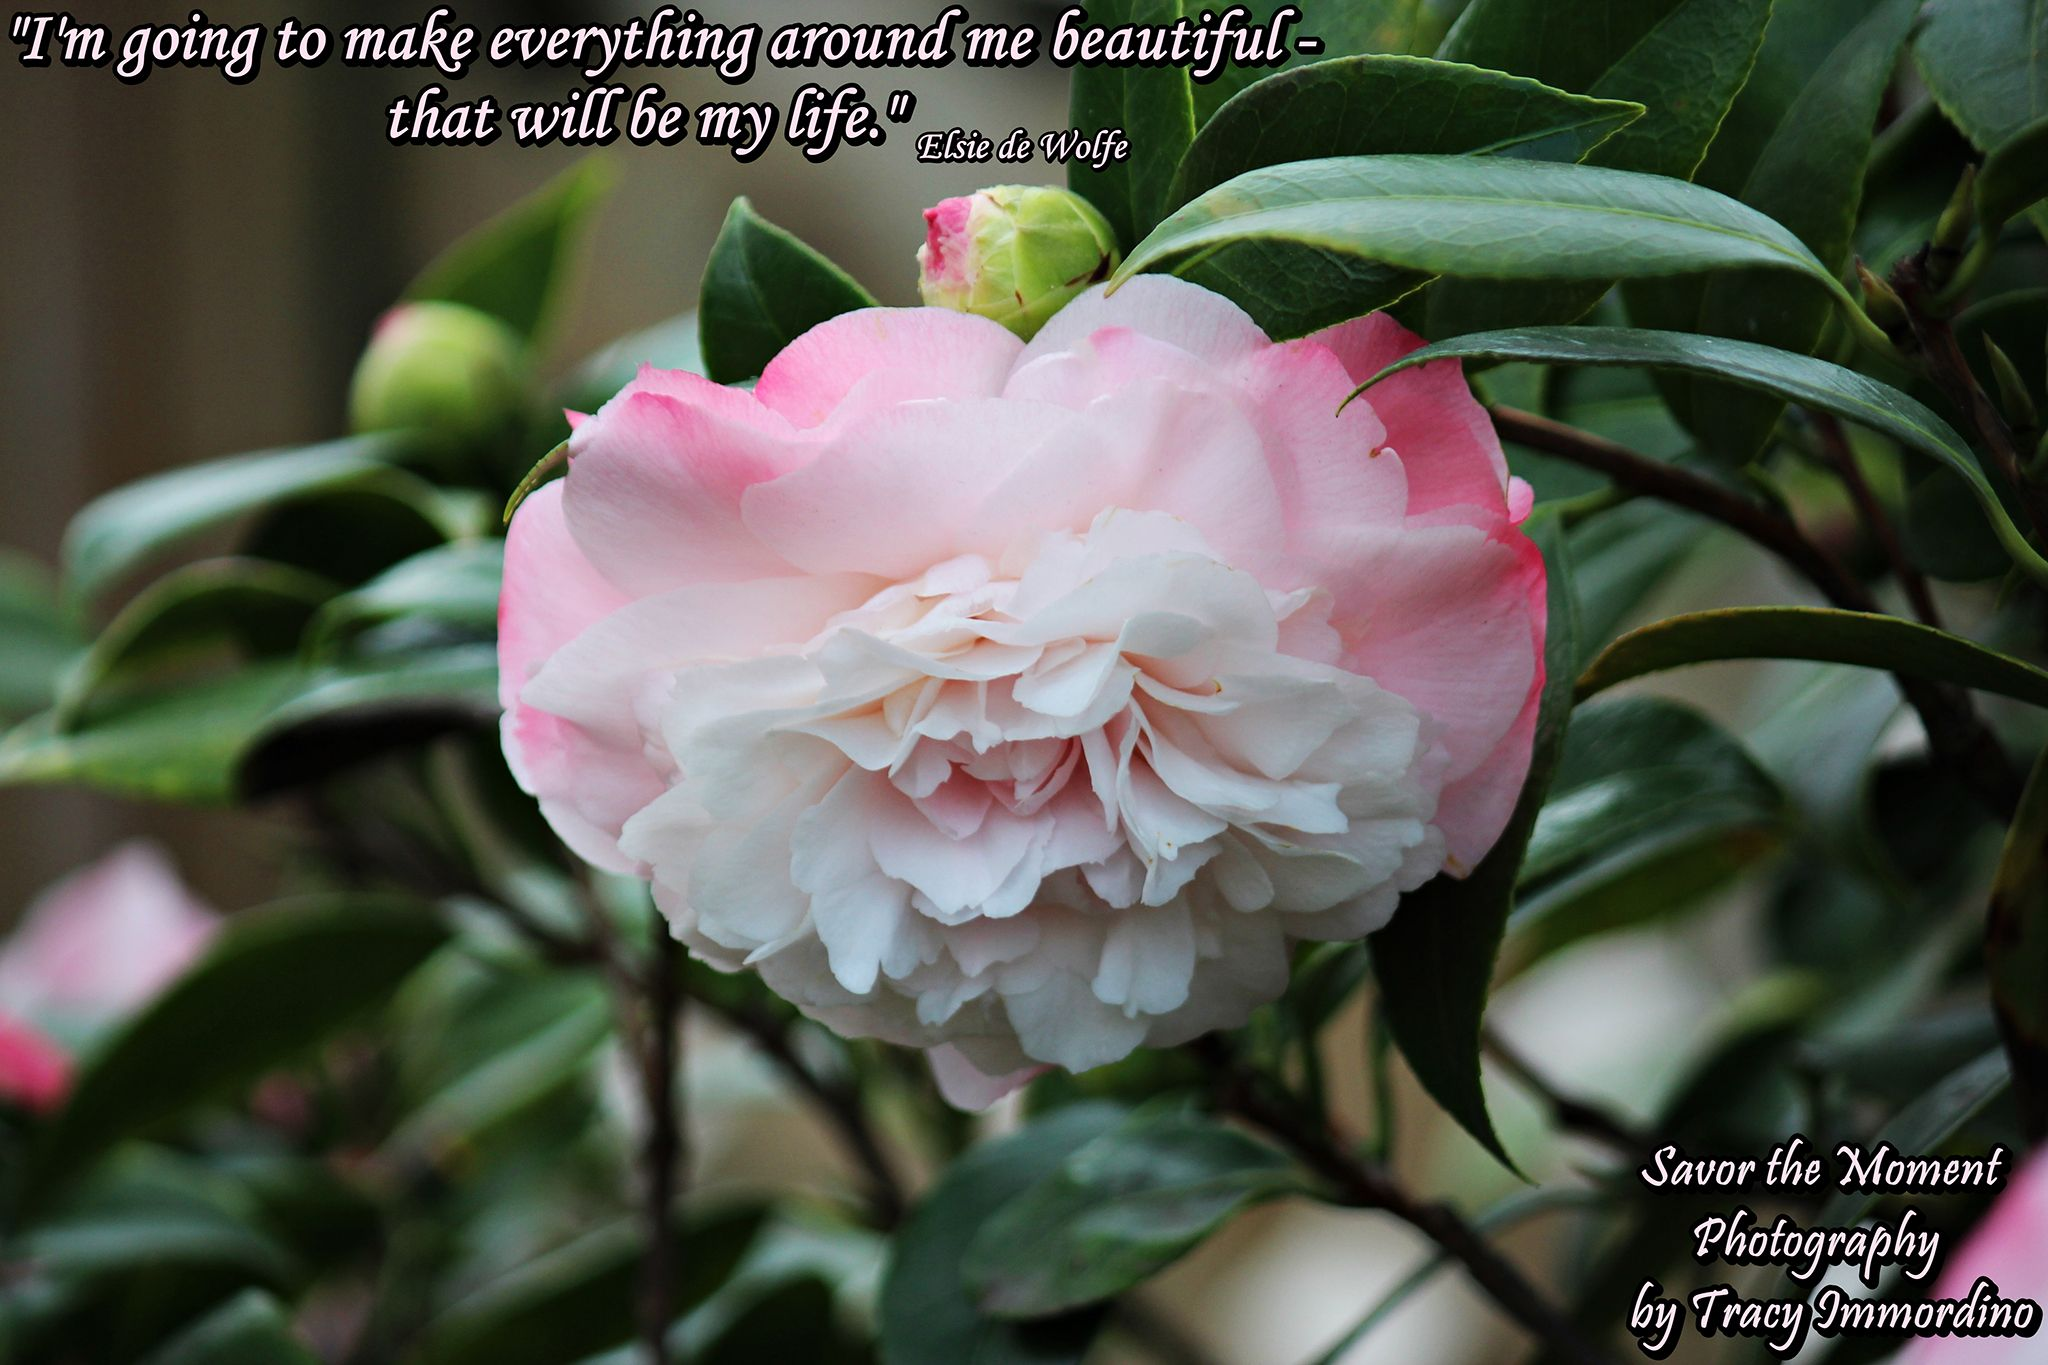 pink camellia savor the moment photography by tracy immordino